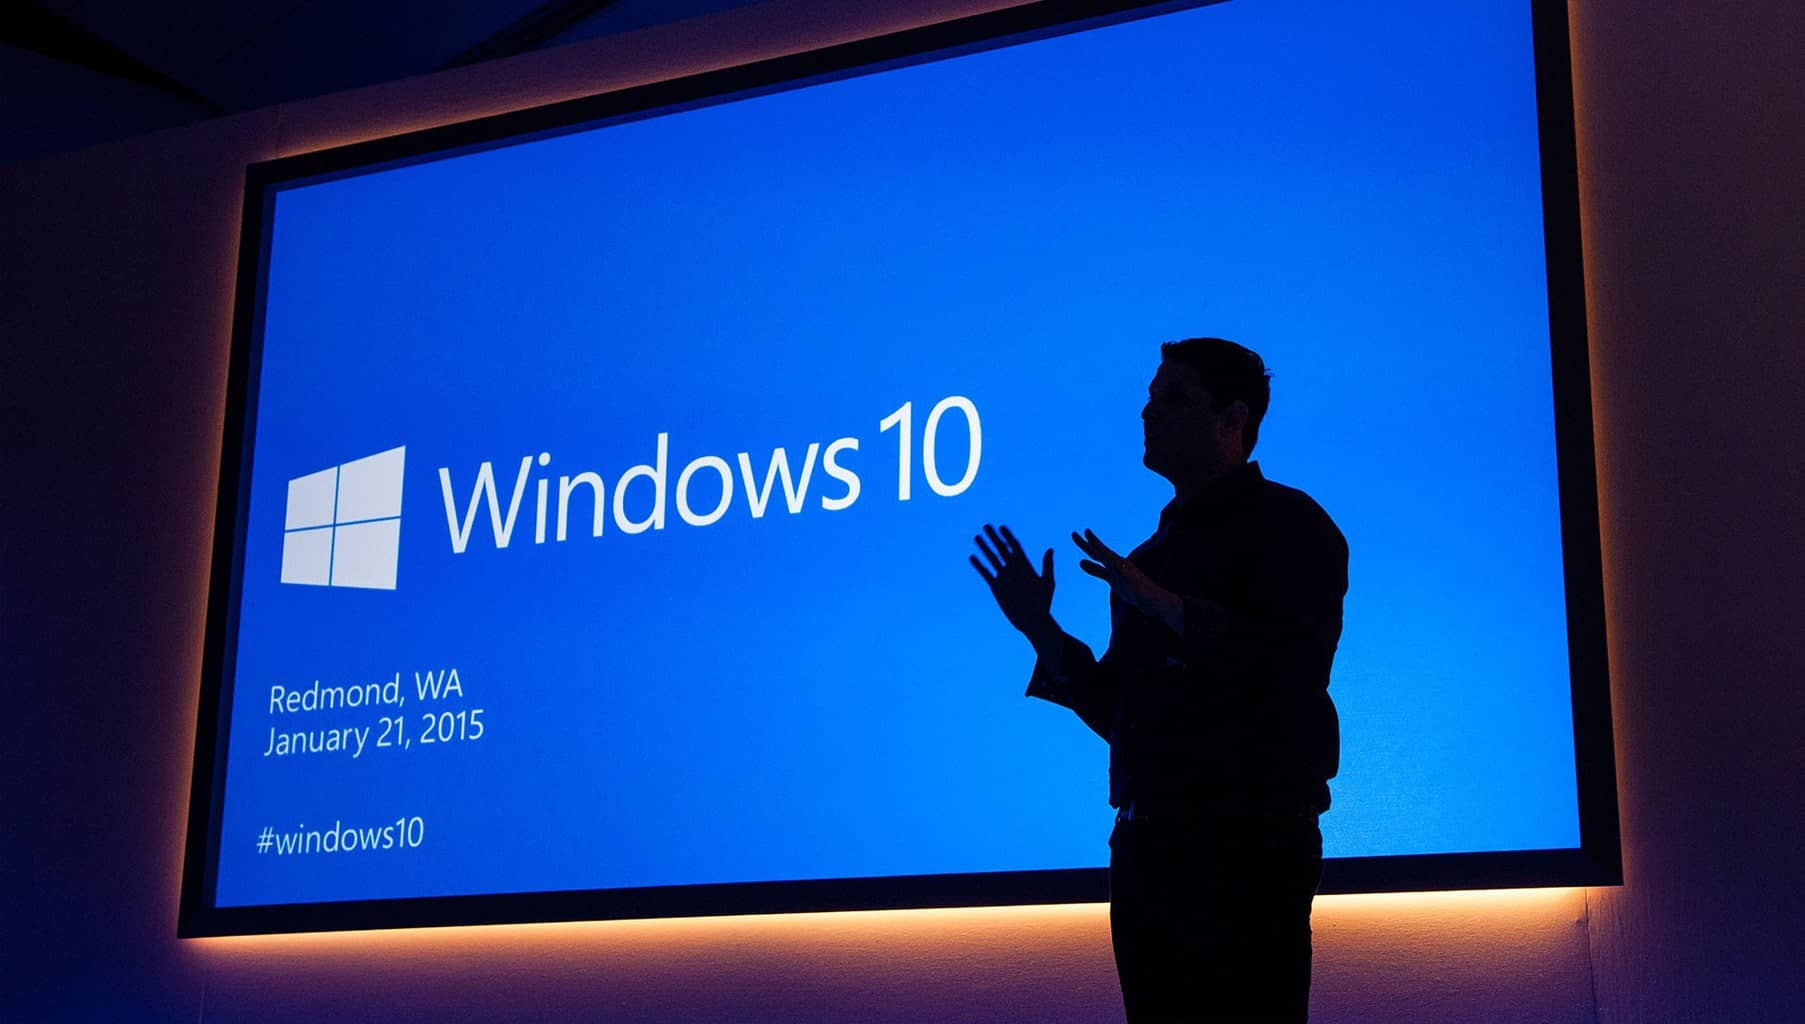 Come eliminare errore su Windows10